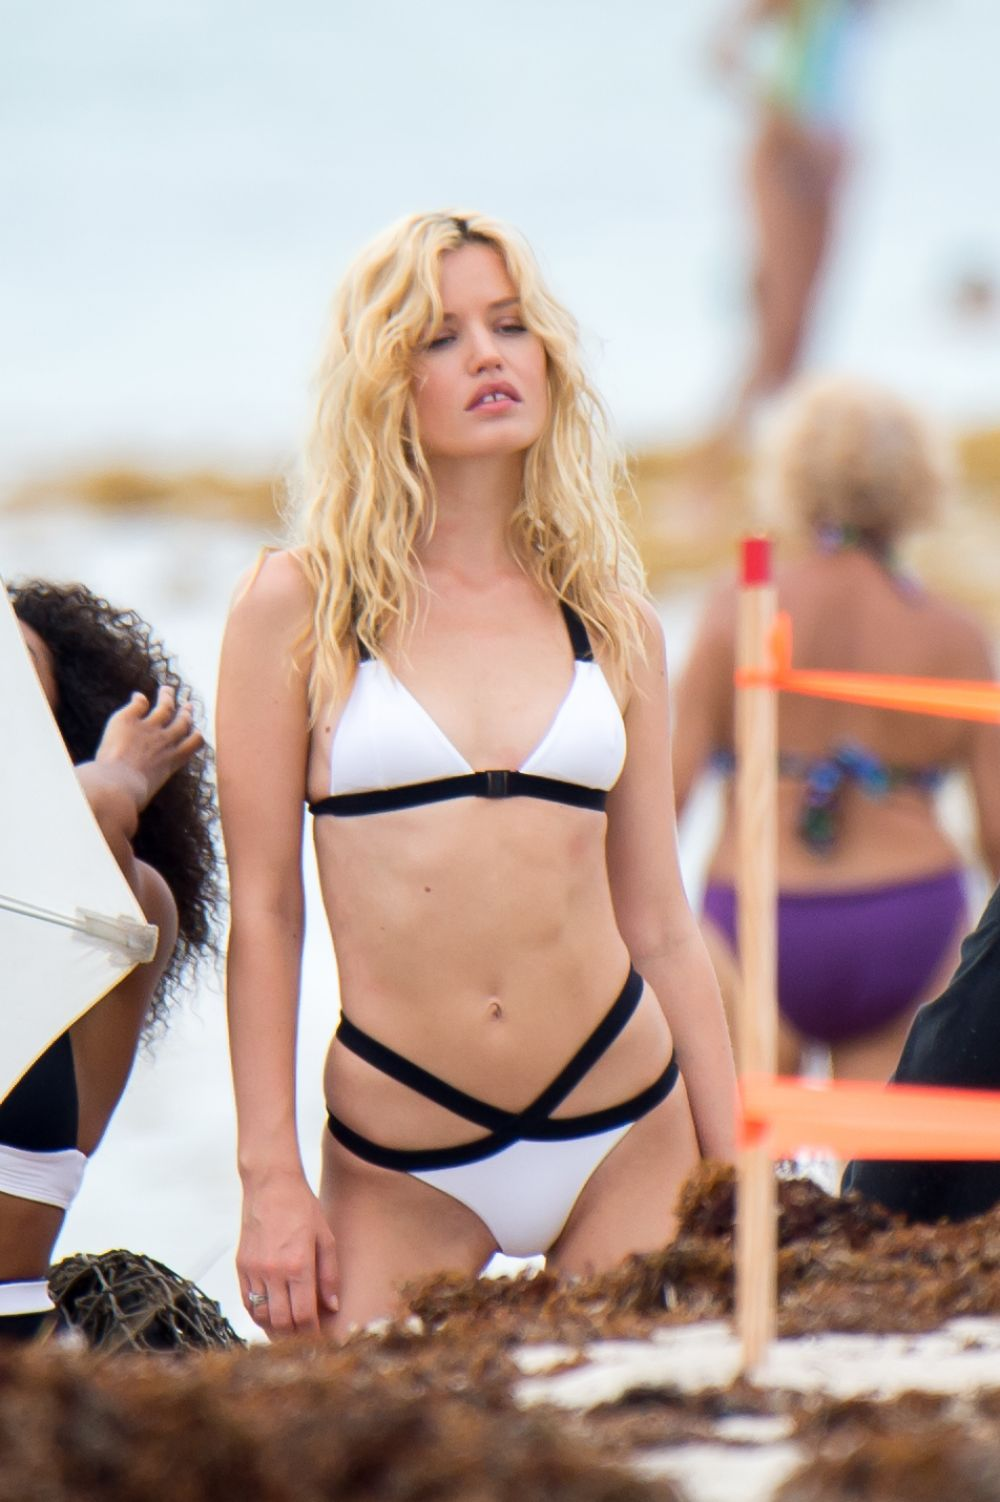 Watch Georgia may jagger for bikini and swimsuit photoshoot in miami video